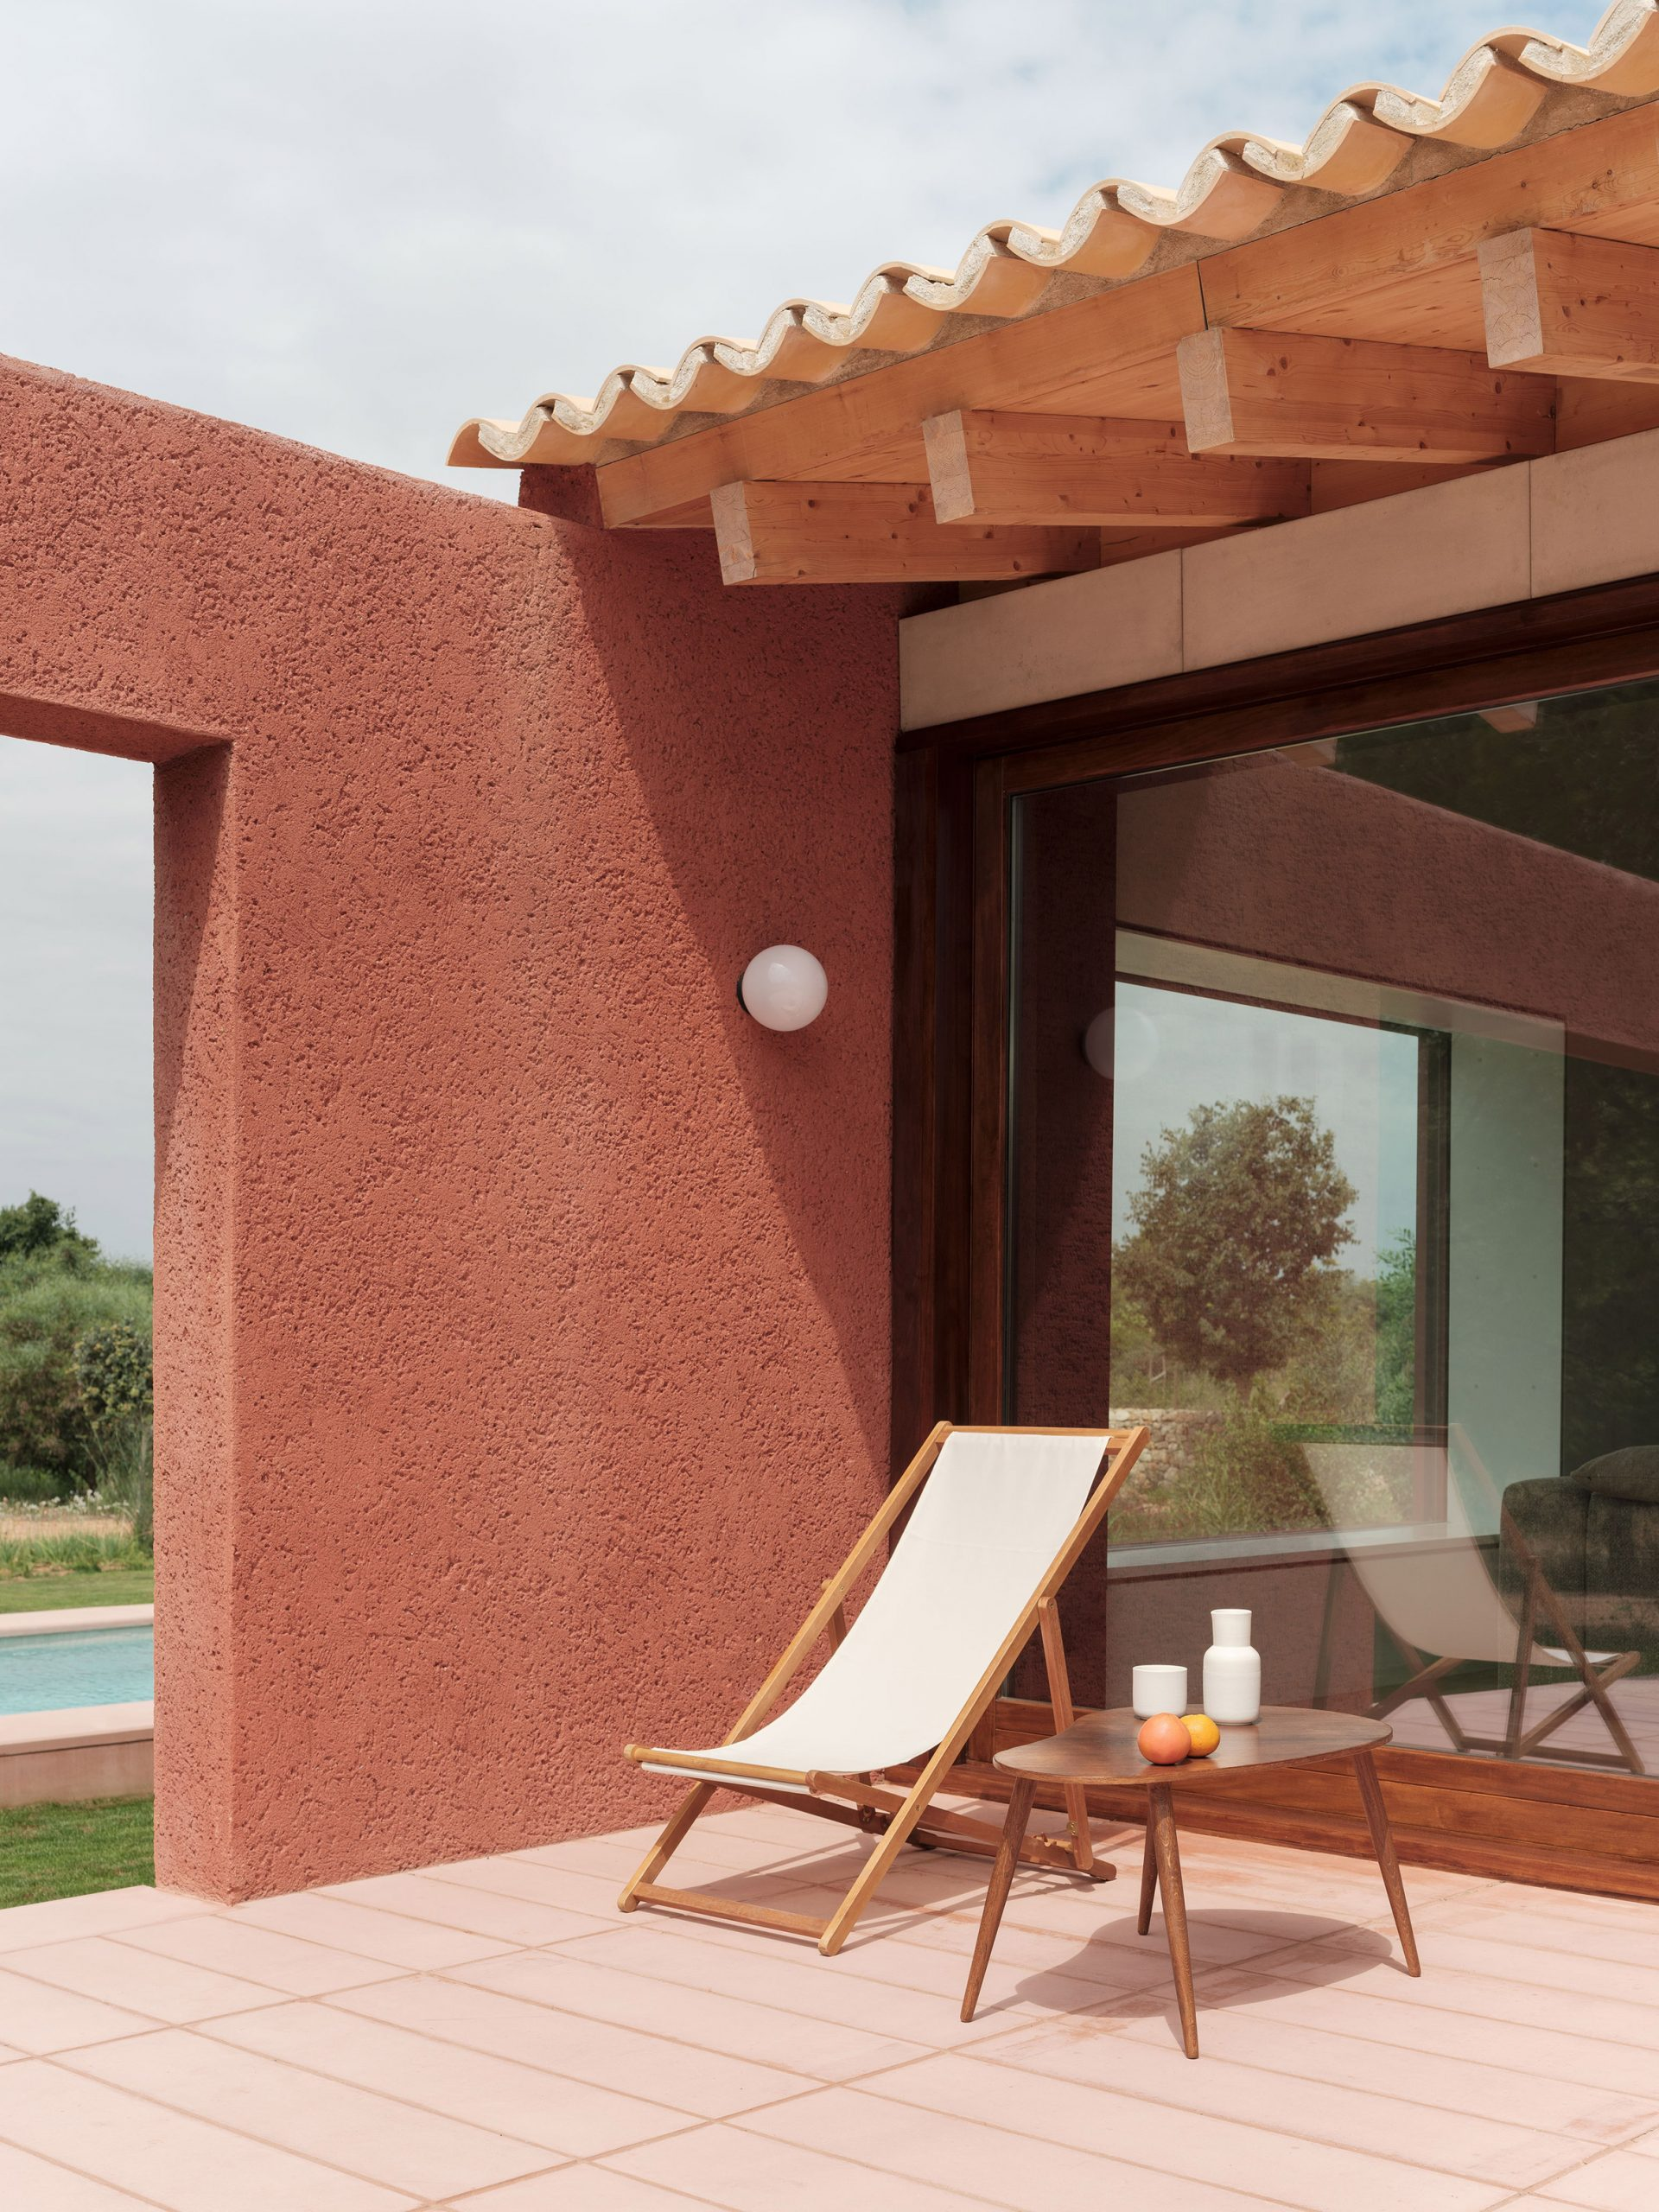 A tiled terrace outside a holiday home in Mallorca